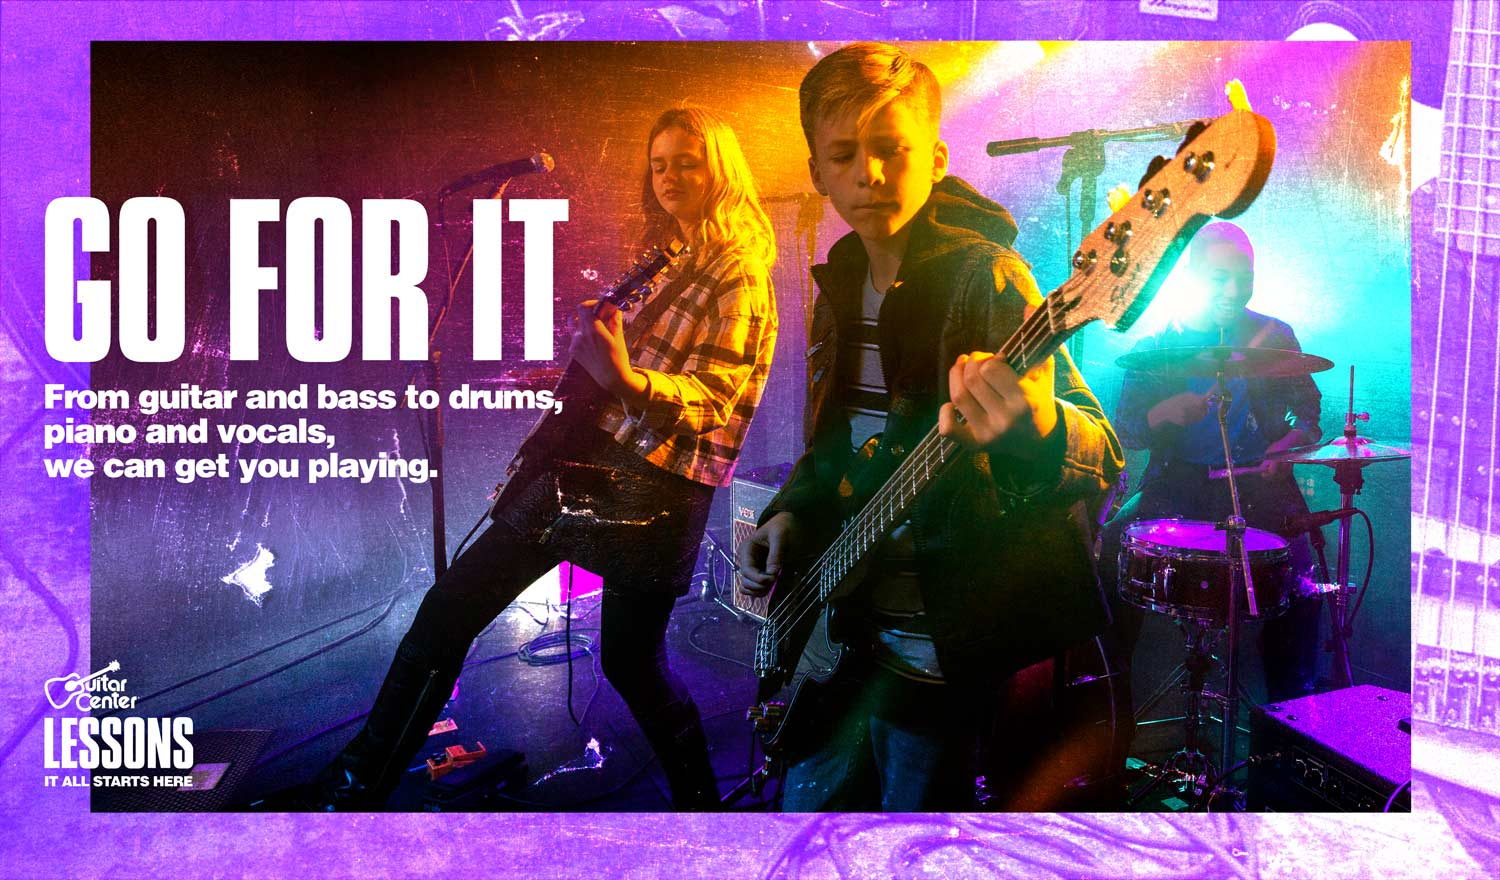 <h1>Go for it, from guitar and bass to drums, piano and vocals, we can get you playing</h1>